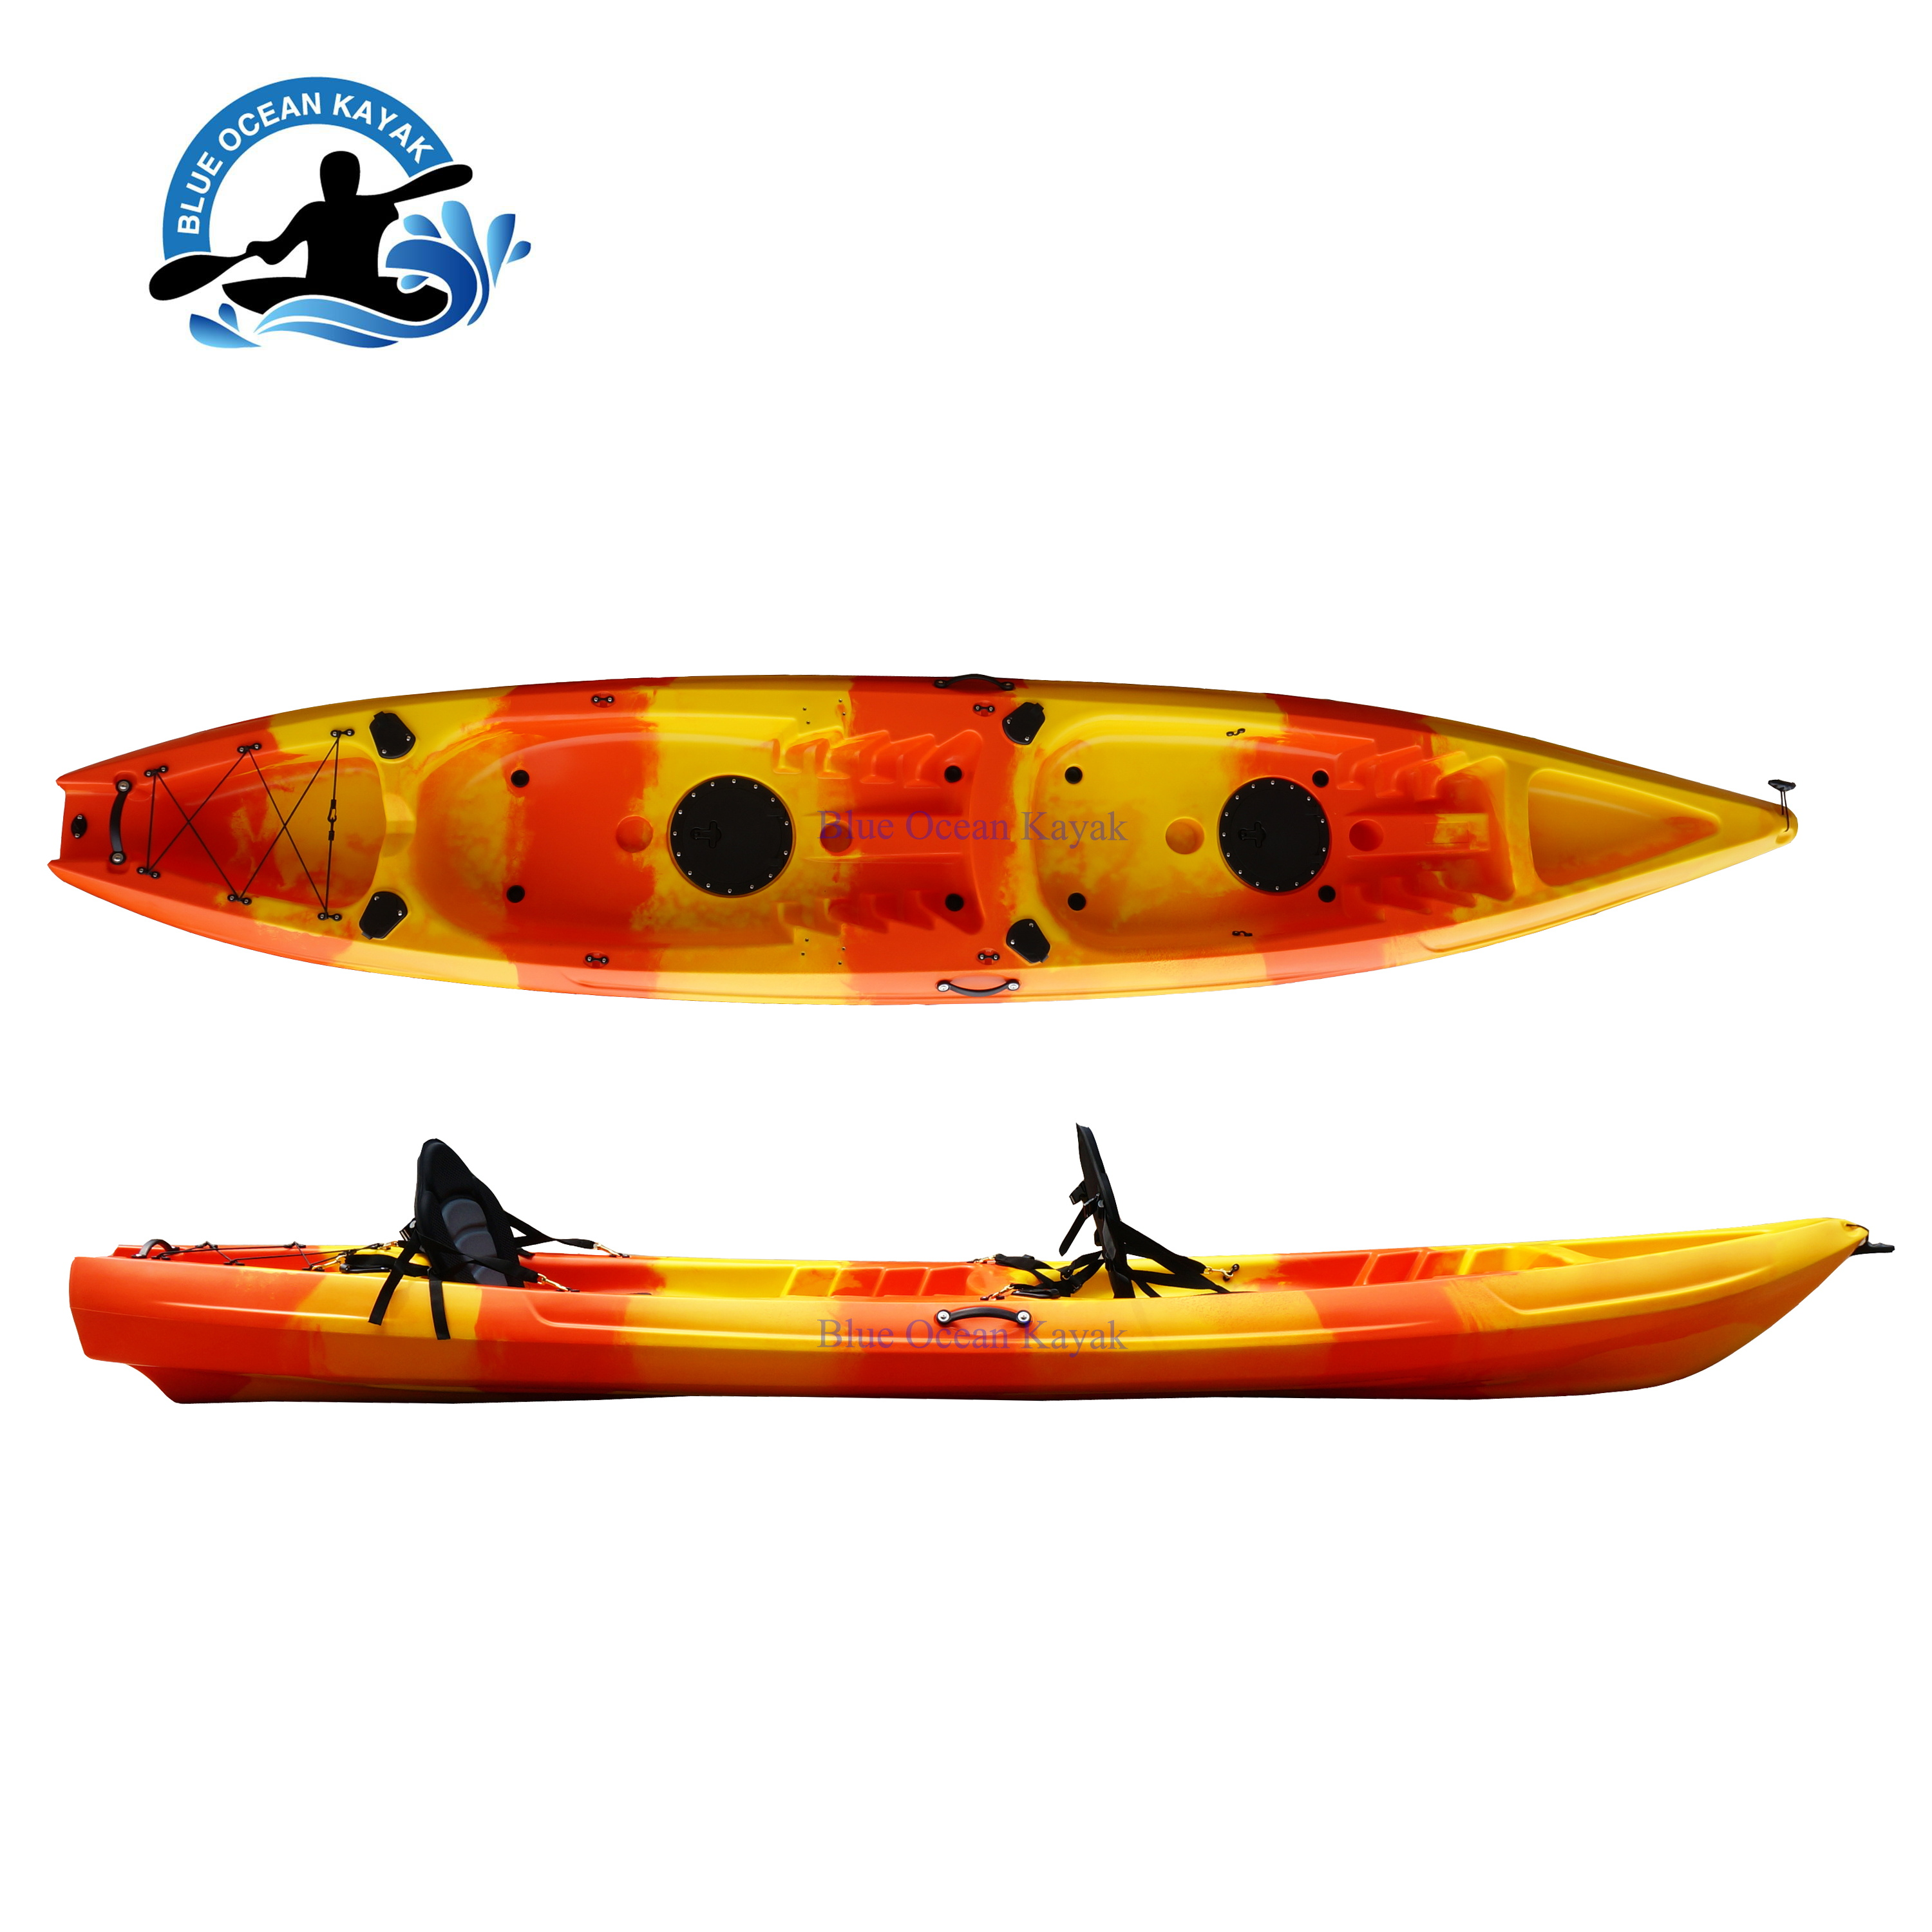 Ocean Kayak For Sale >> Blue Ocean Summer 2 Person Fishing Kayak Cheap Double Kayak Buy 2 Person Kayak Sale Cheap Sea Kayak For Sale In China Double Kayaks For Sale Product